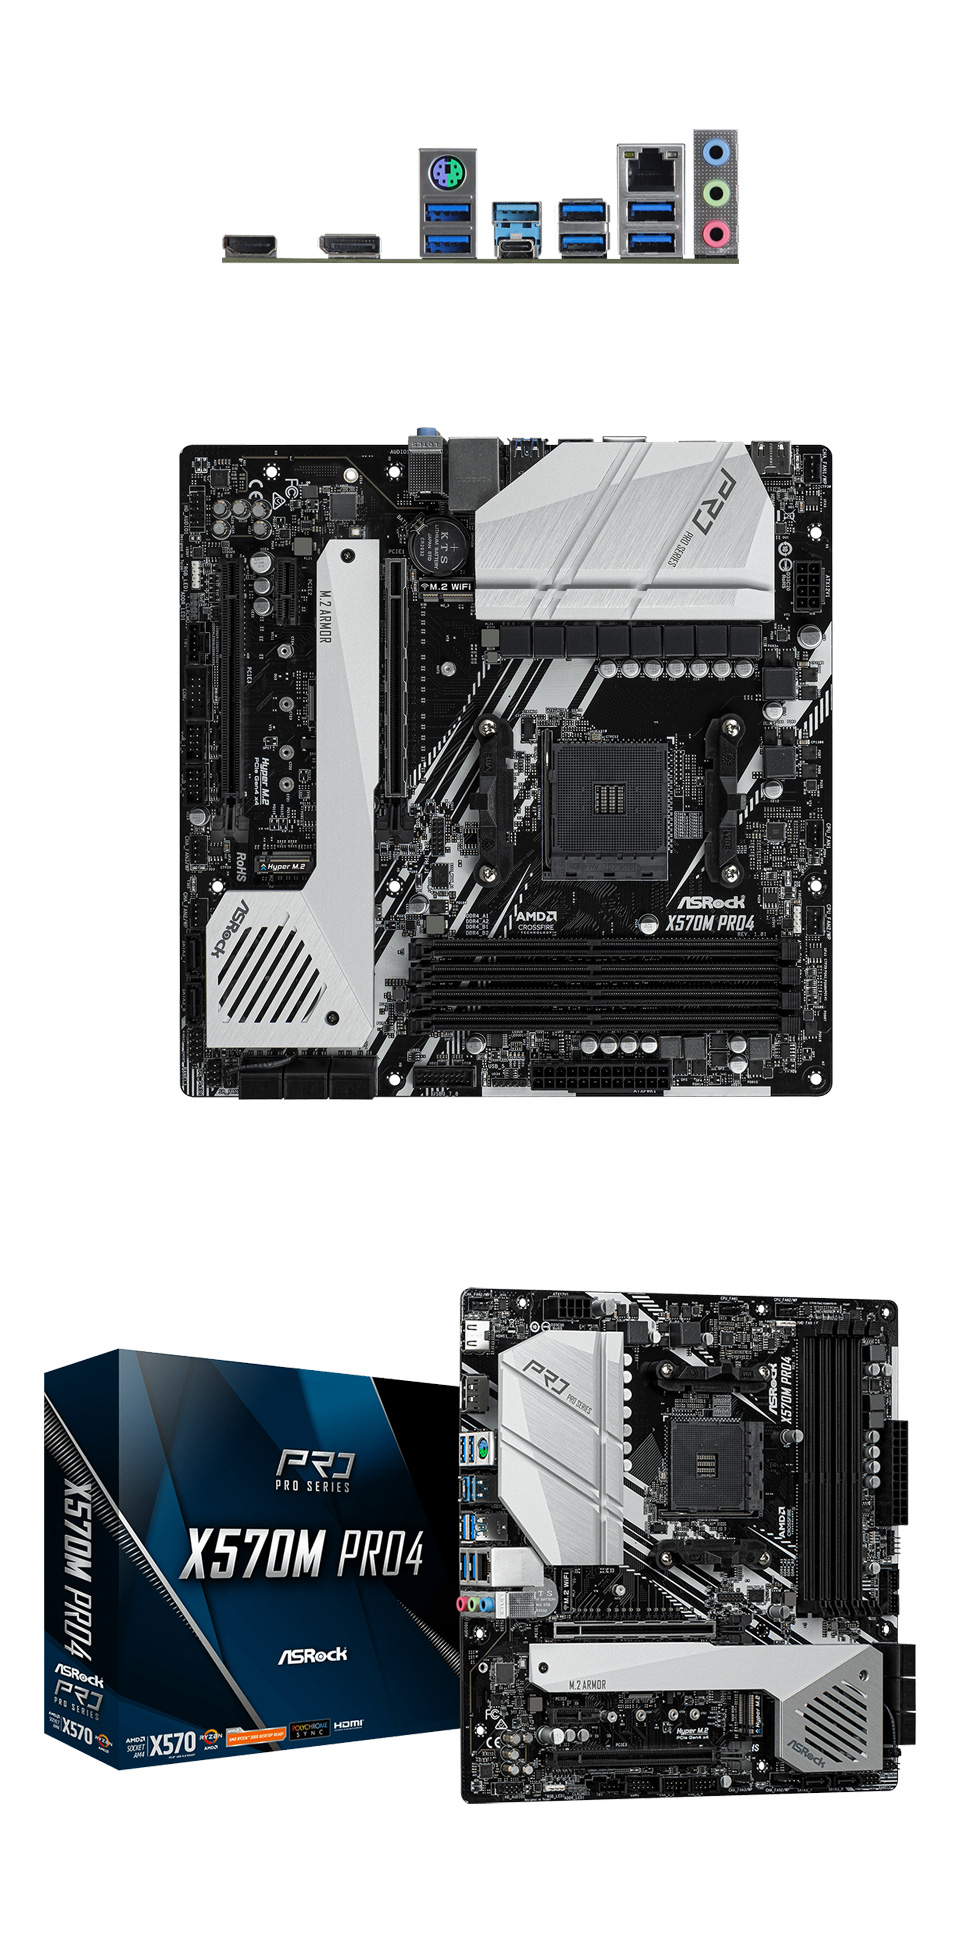 ASRock X570M Pro4 Motherboard product